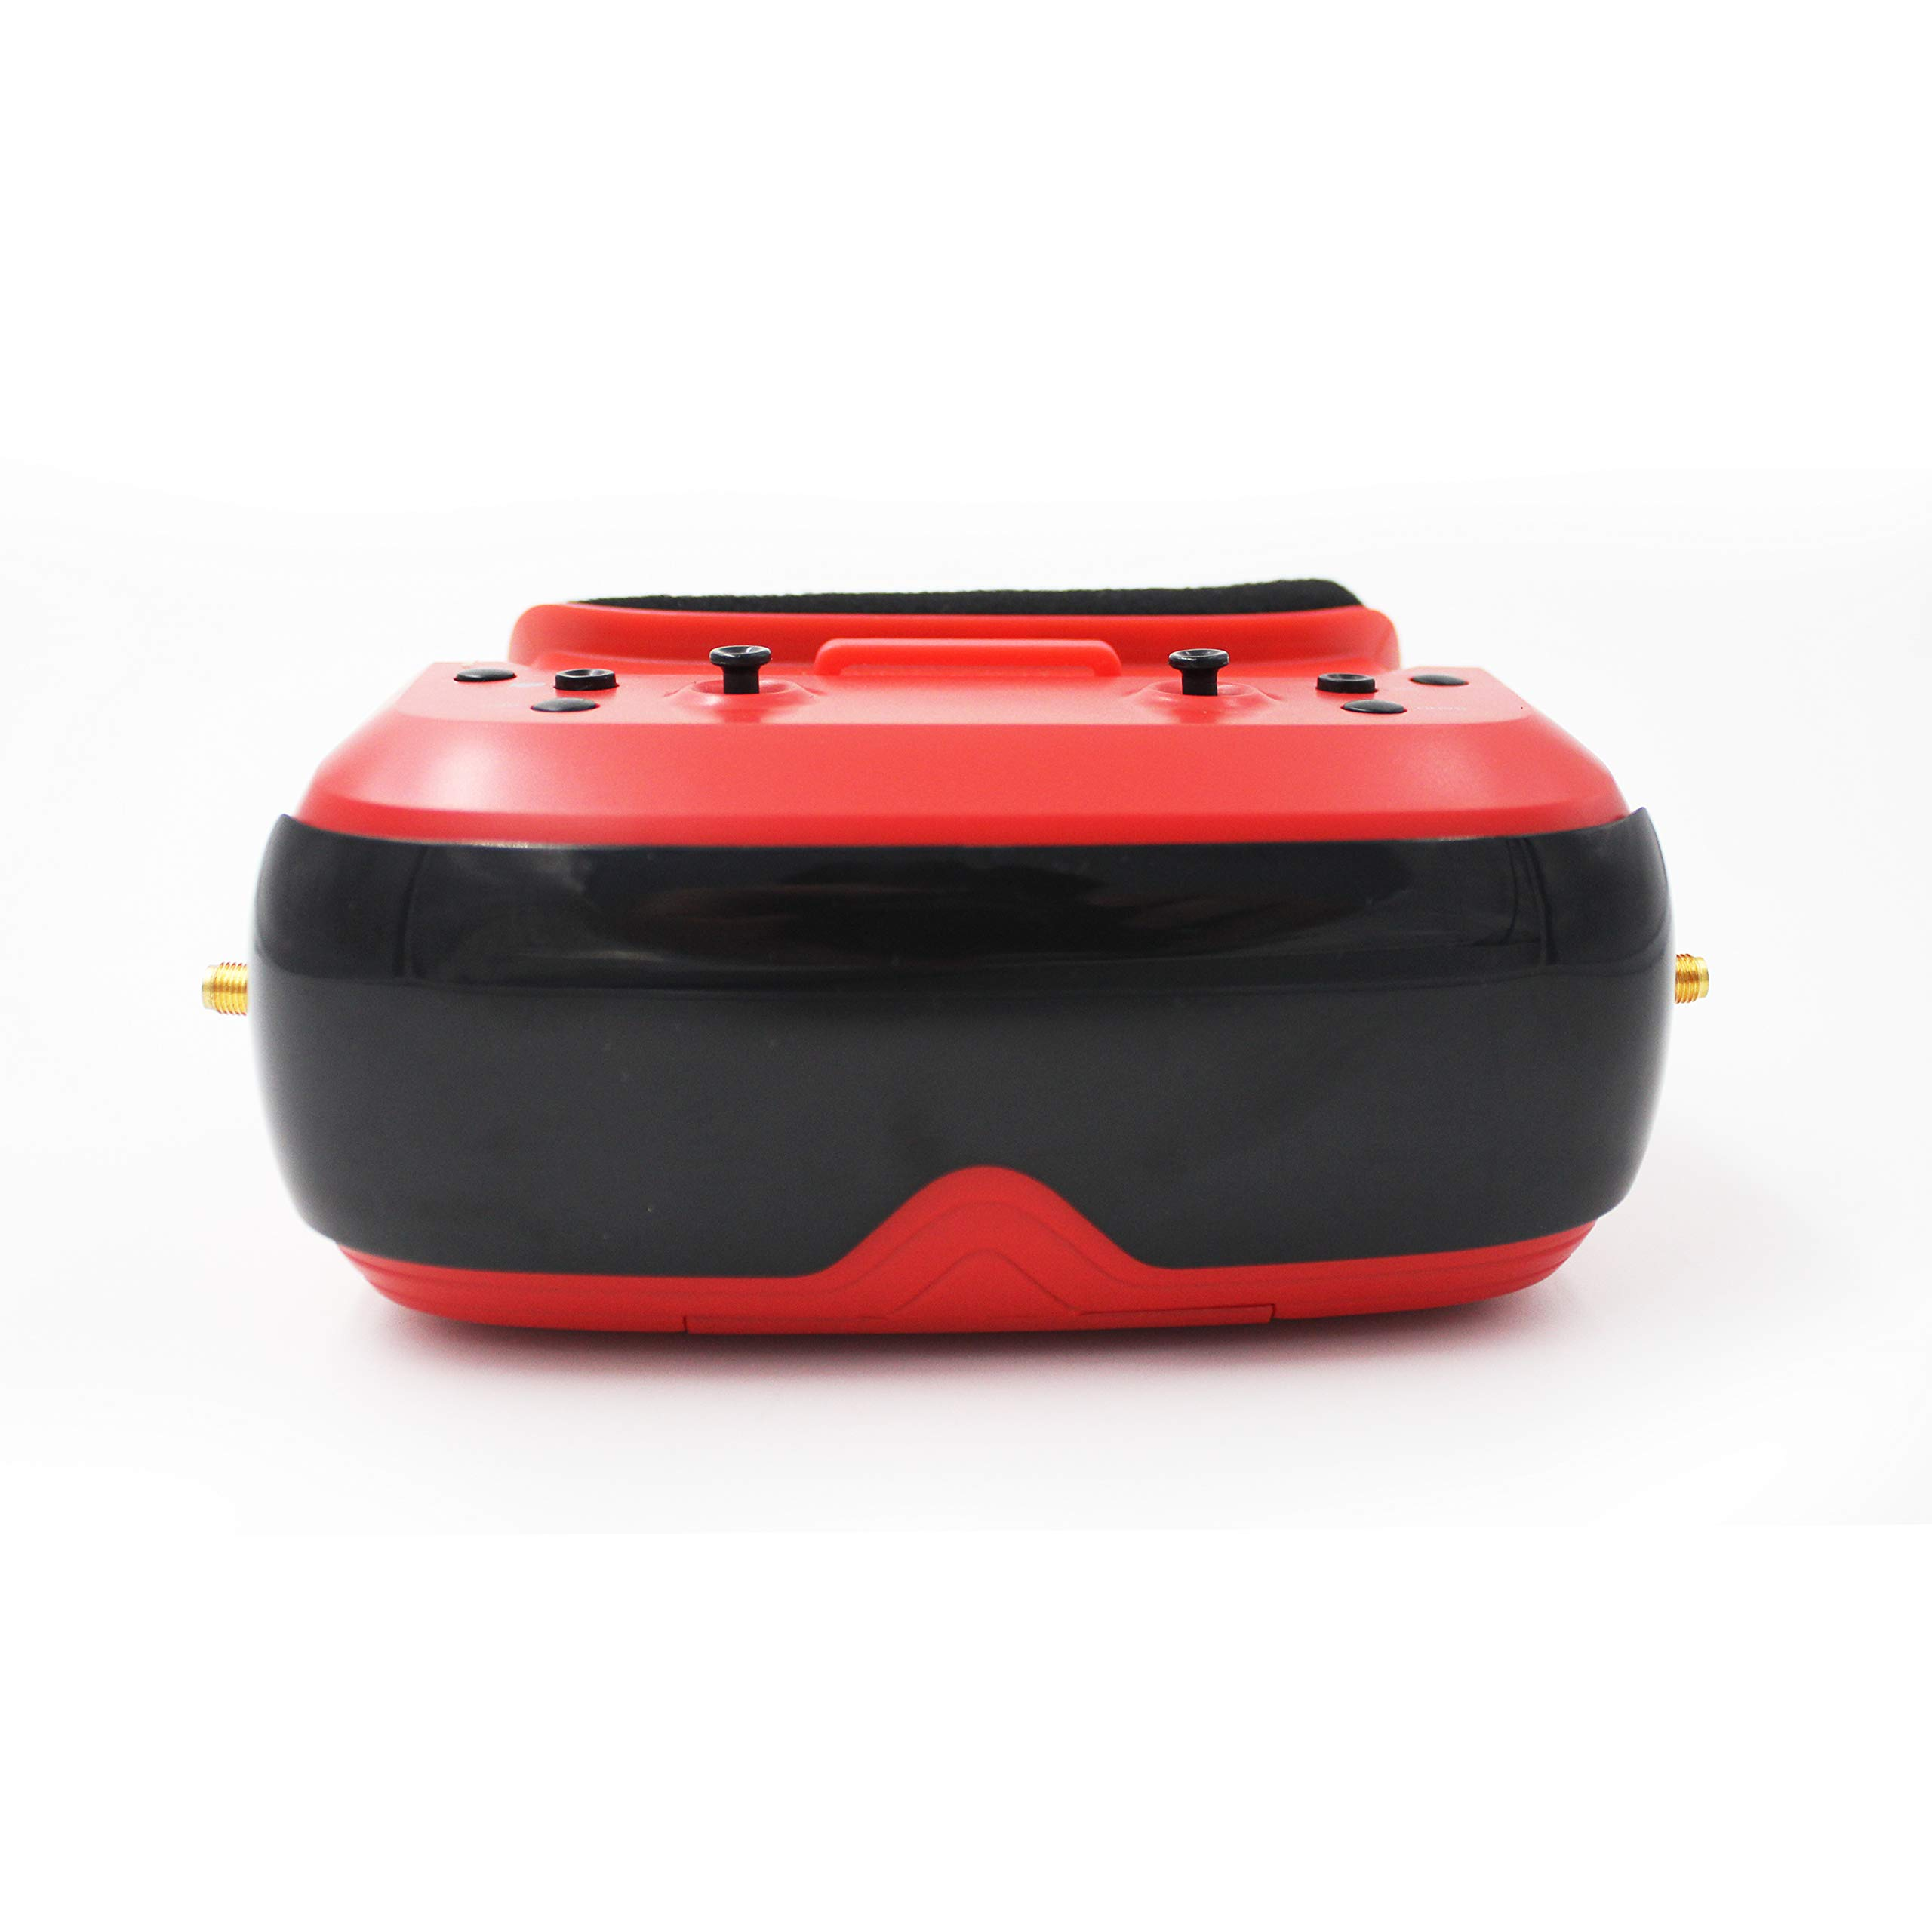 TOPSKY Prime1S FPV Goggles, Headplay Glasses 5.8G 48CH Raceband Dual Modules DVR Headset, FPV Receiver Kit with Eyepatch for Quadcopter Racing Drone (Red) by TOPSKY